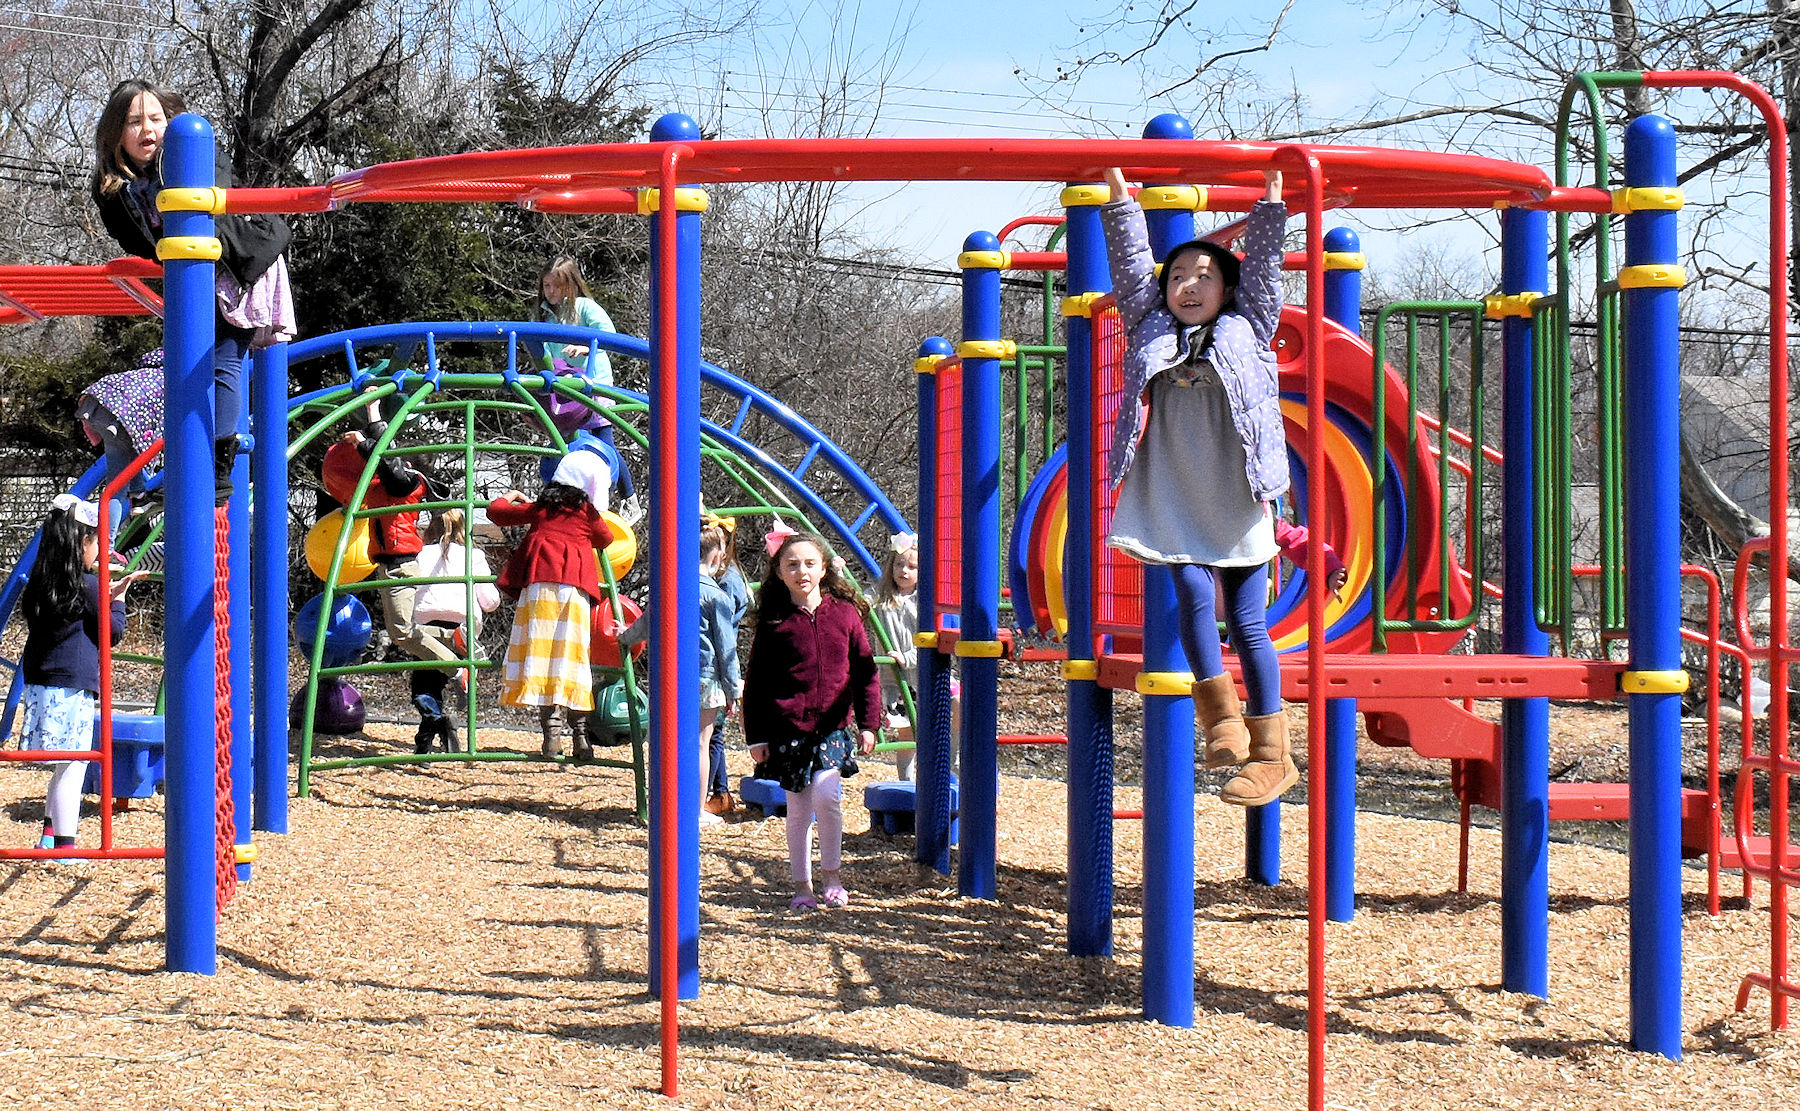 students playing on playground apparatus.